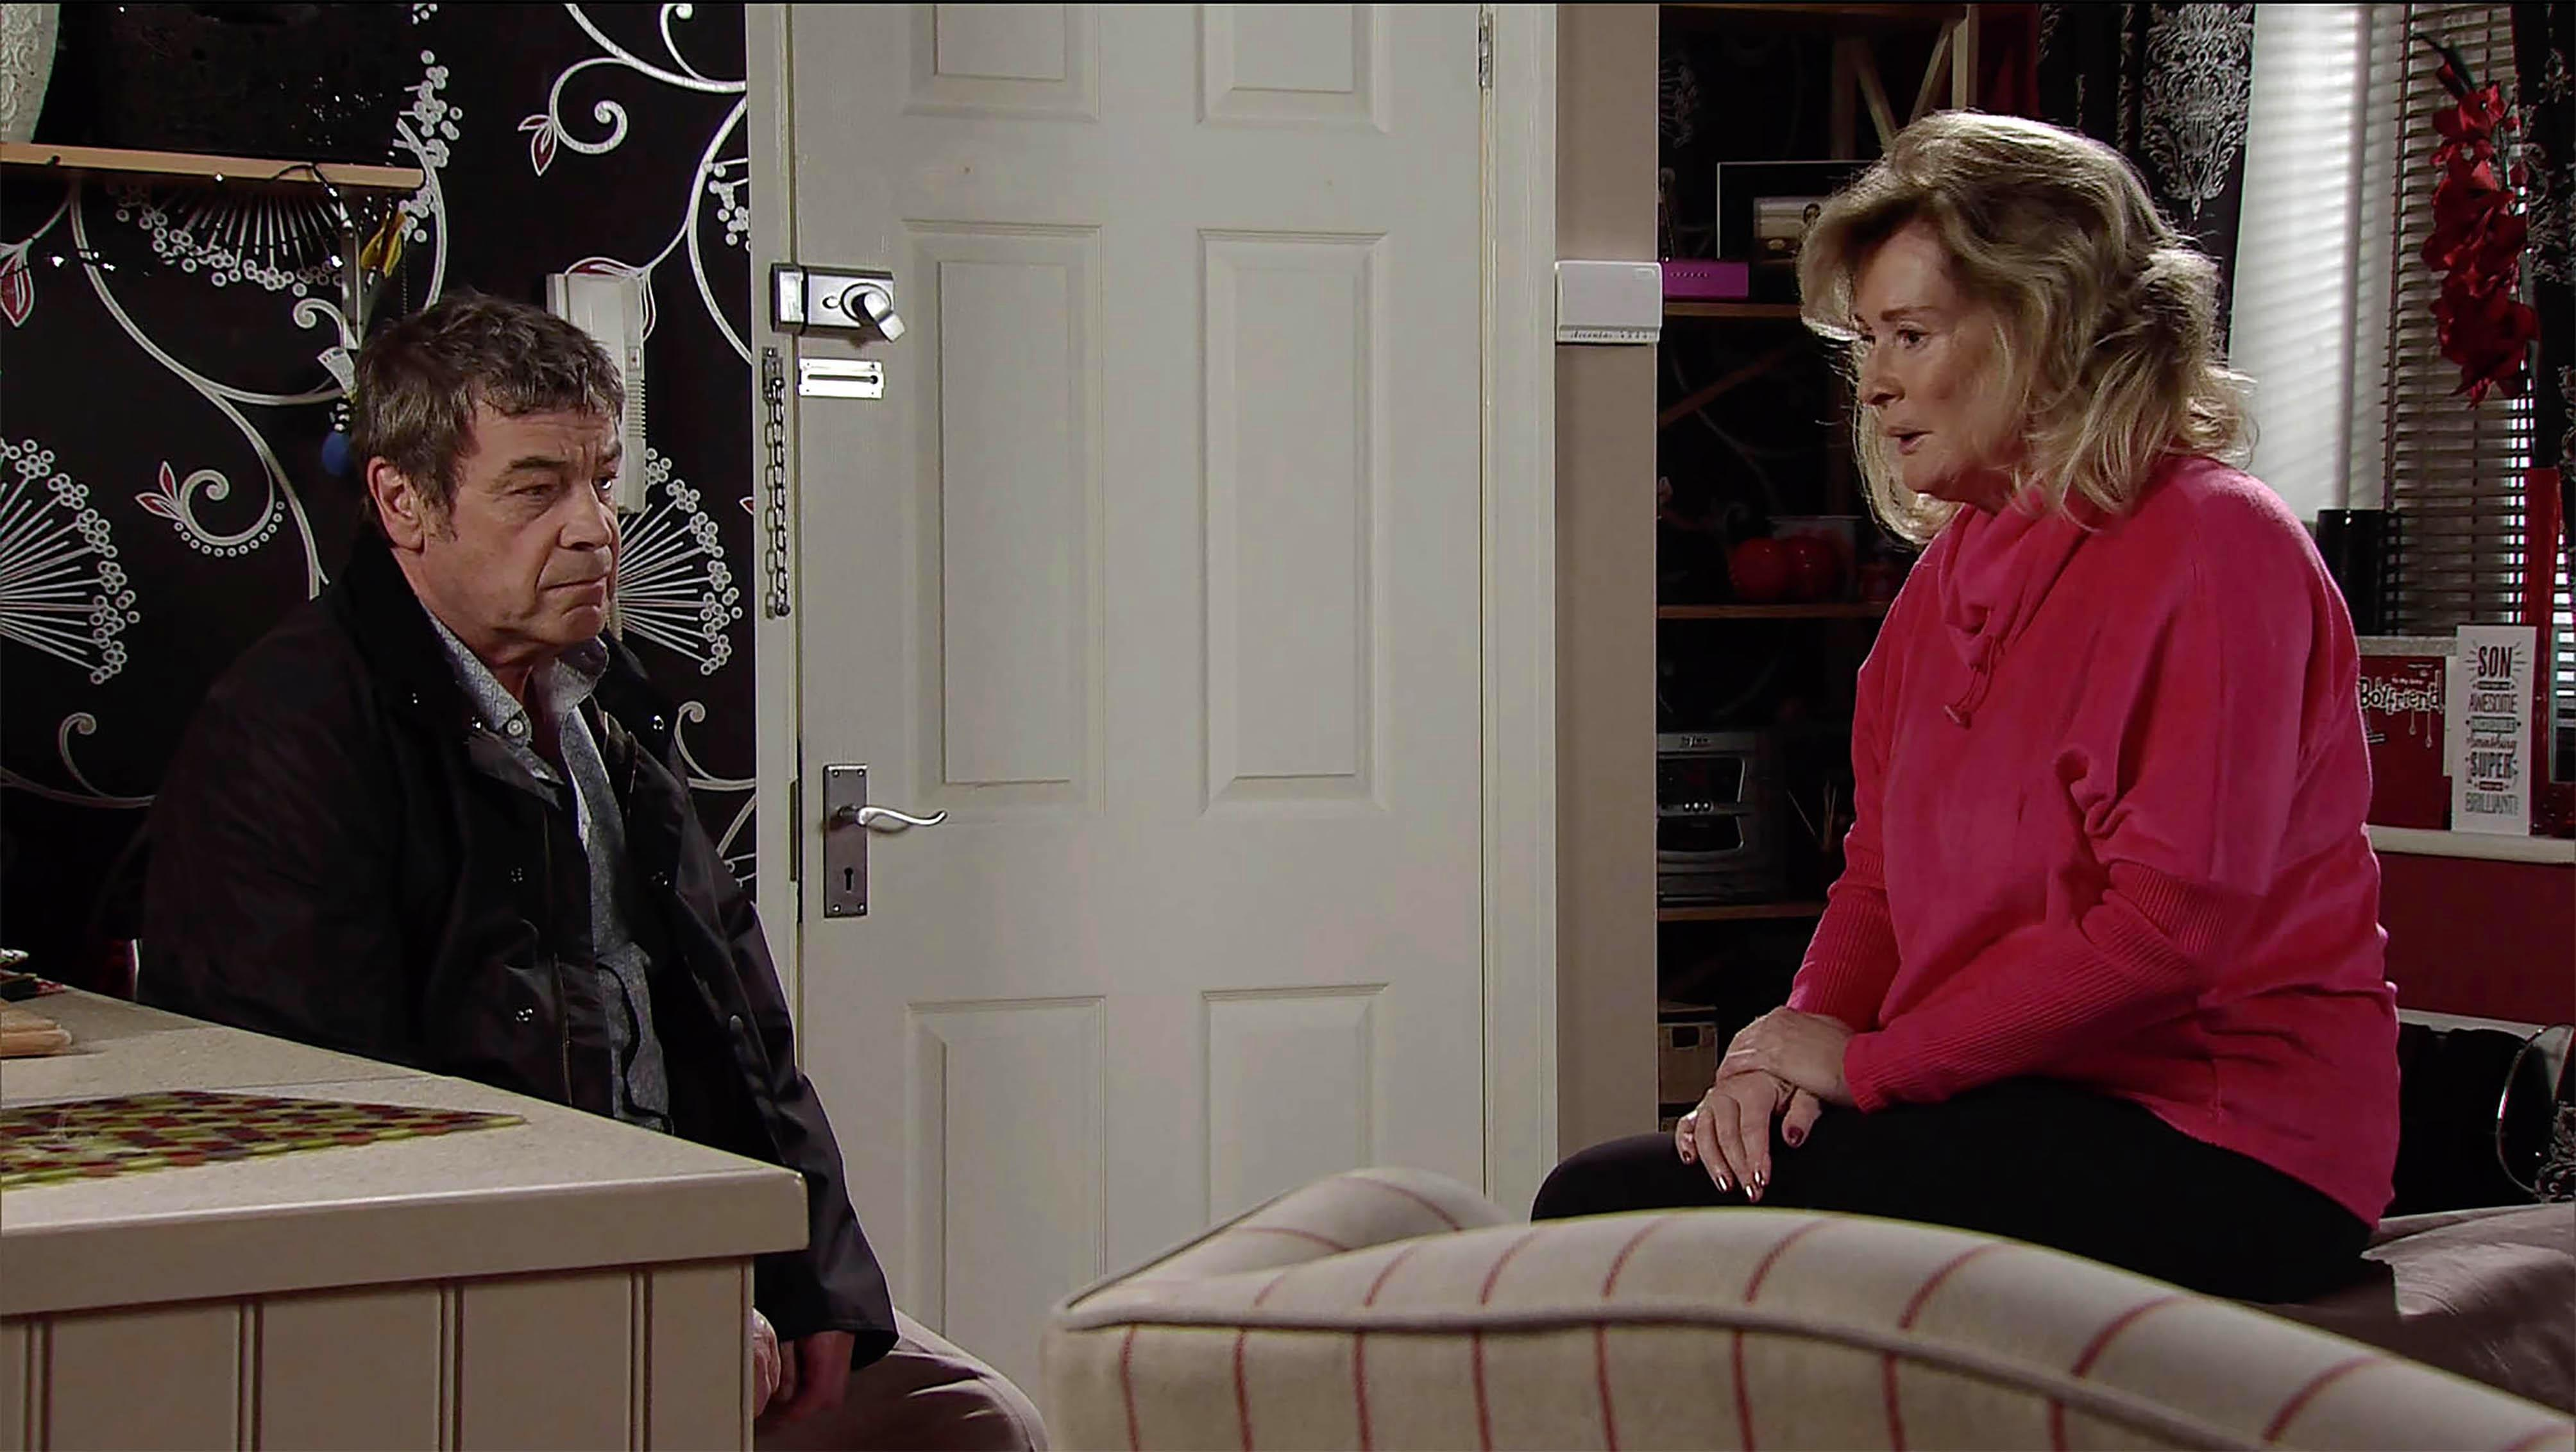 Coronation Street spoilers: Liz McDonald fired from the medical centre after helping Johnny Connor's custody scheme against Eva Price